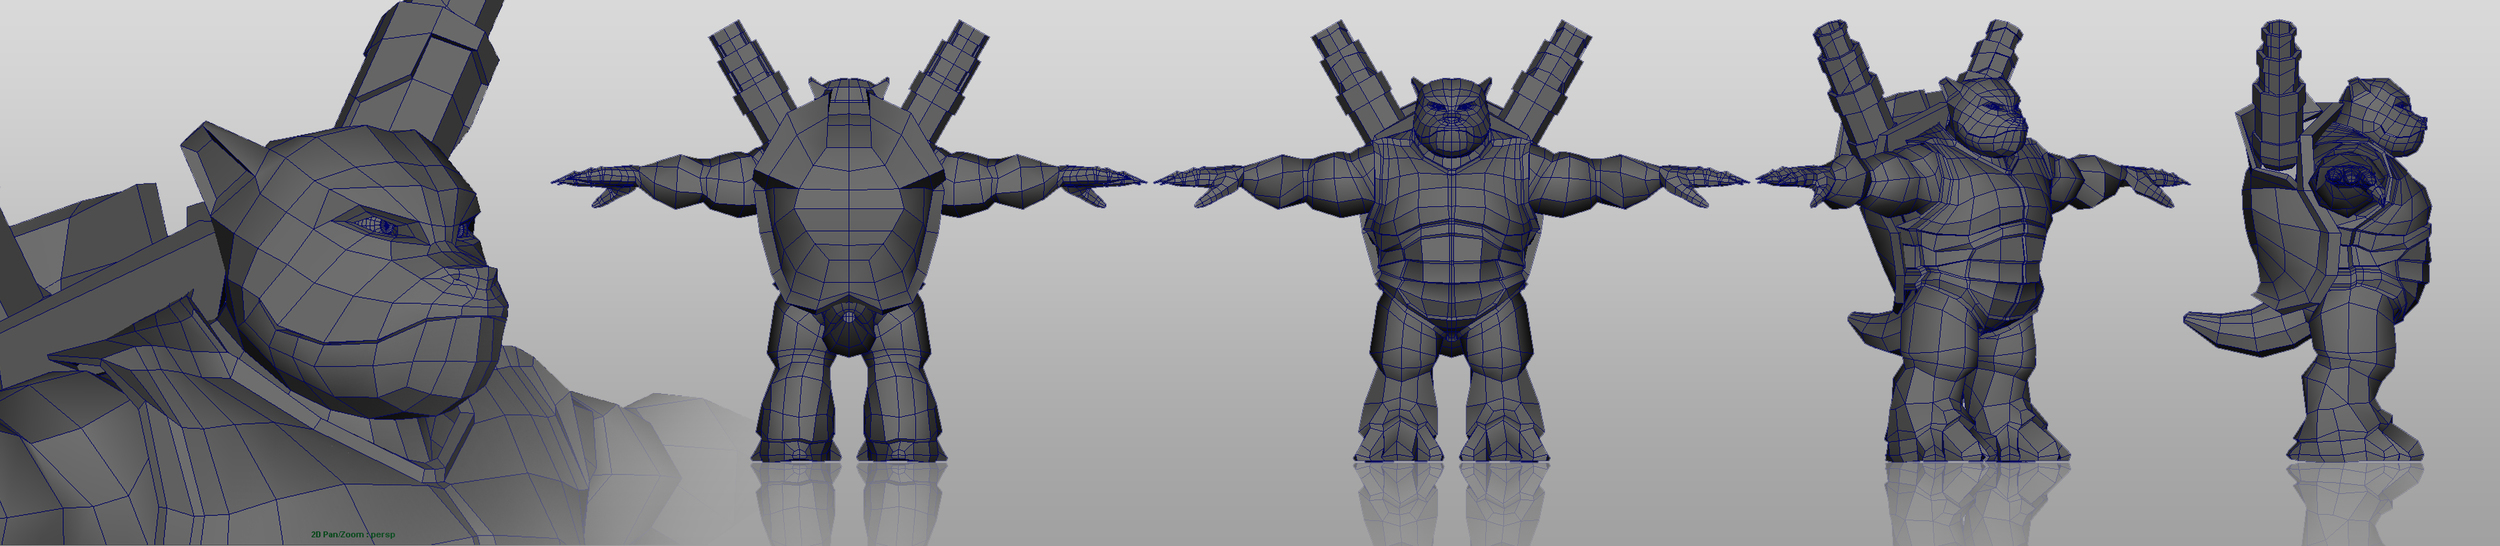 Low-poly Blatsoise - Modeled in Maya